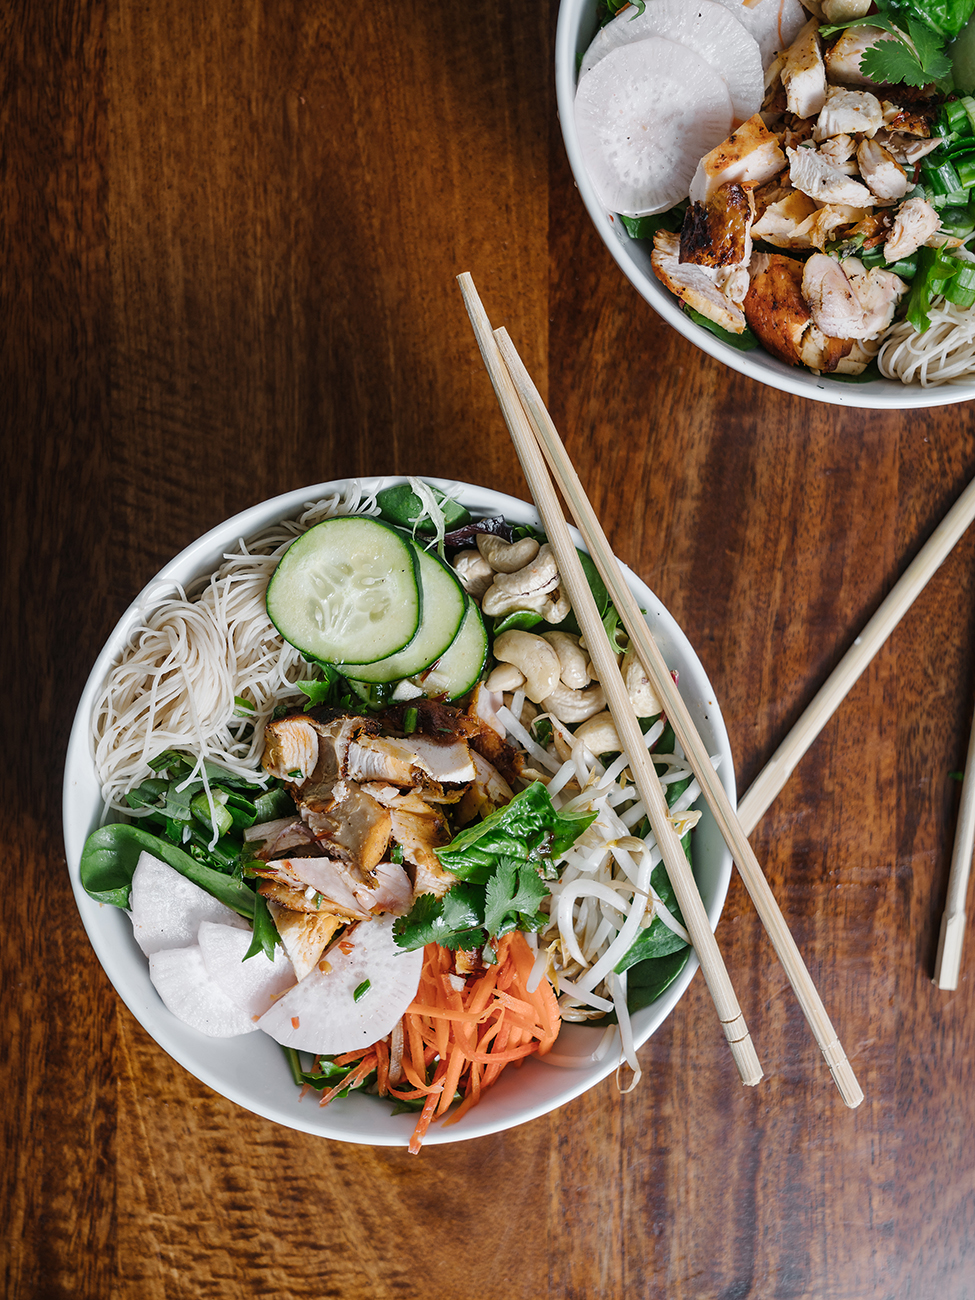 A Vietnamese noodle bowl with chopsticks